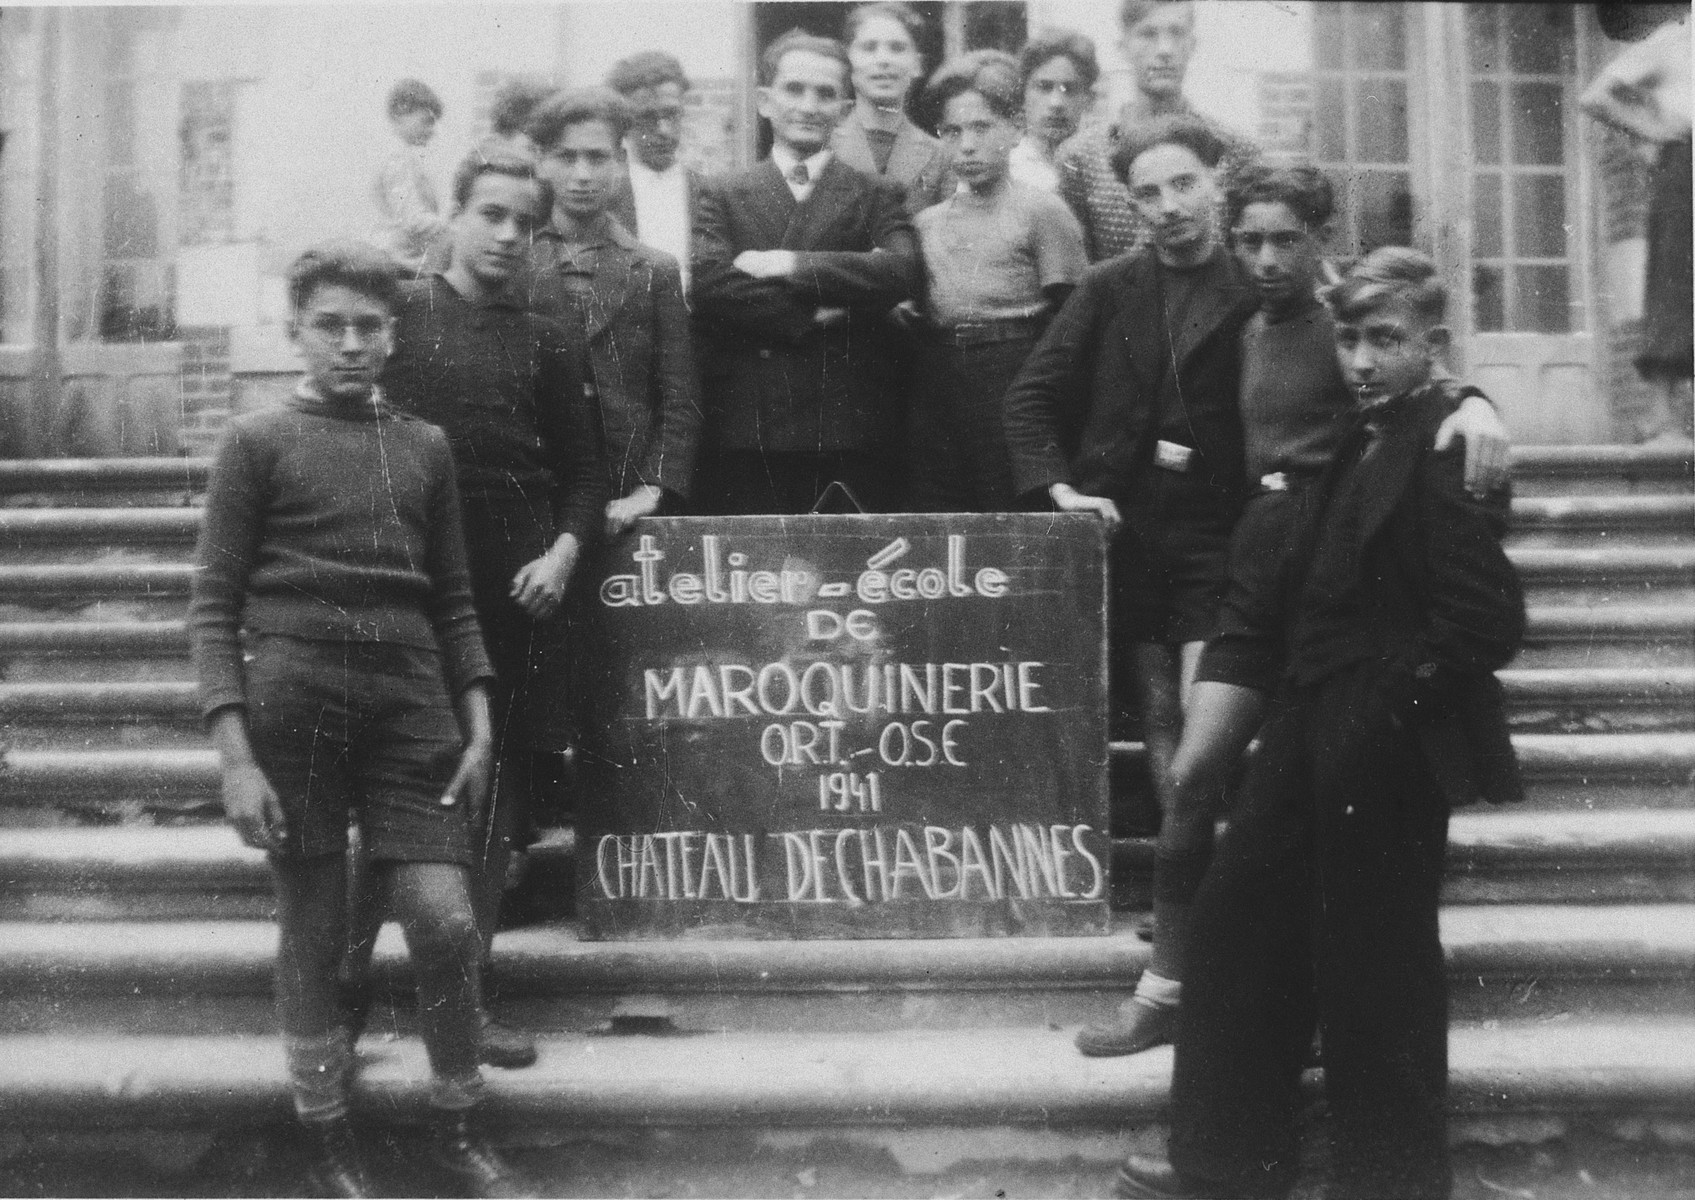 Students in a leatherworking class pose outside on the steps of the Chabannes children's home.   The instructor, Mr. Kenig, is pictured in the center, behind the sign.